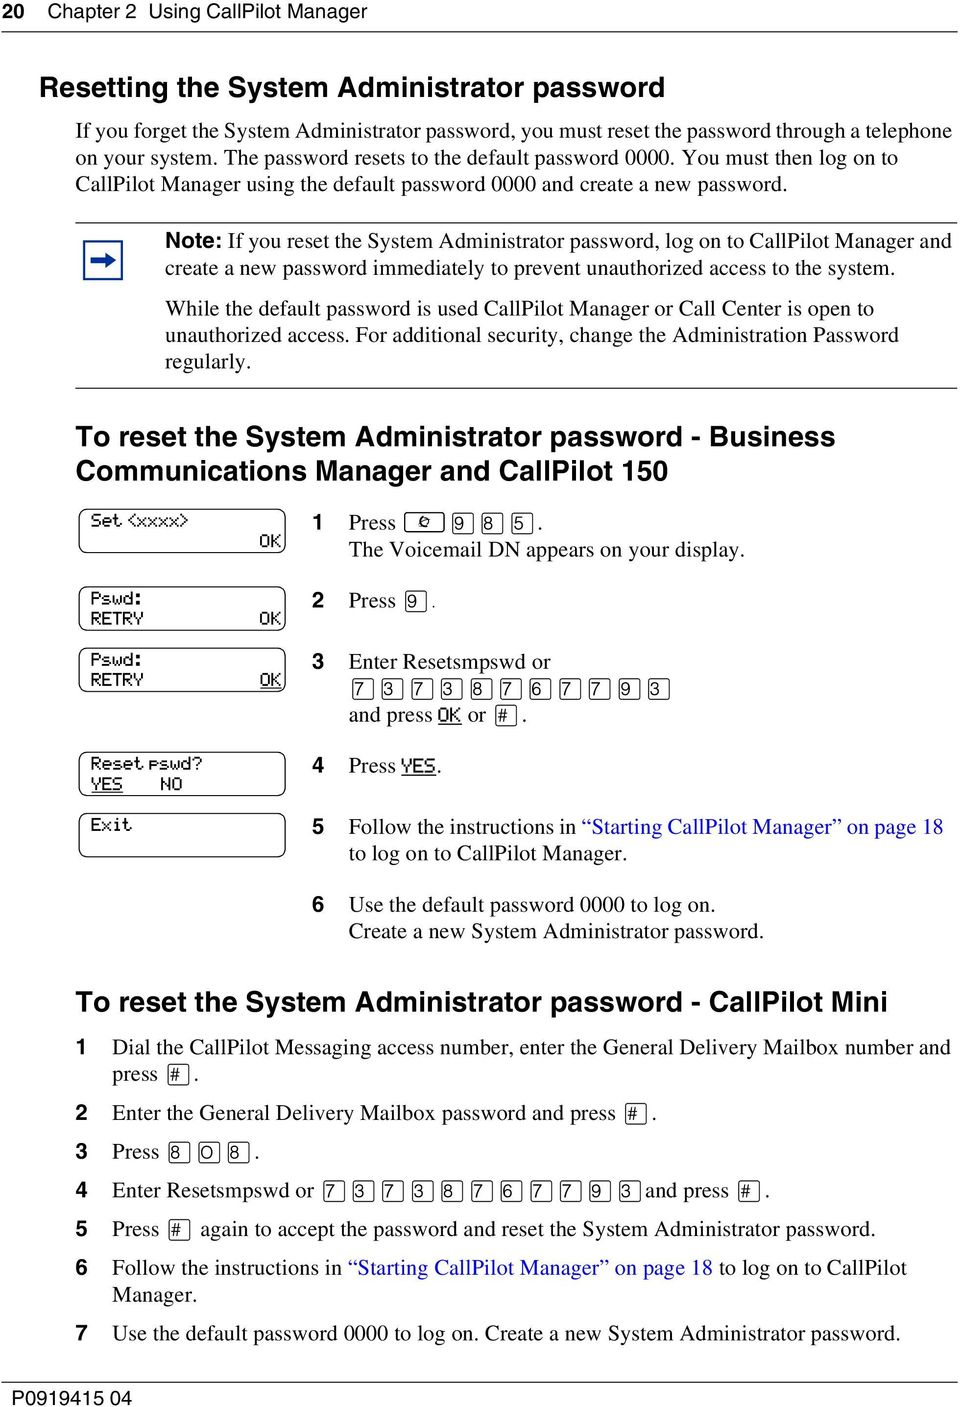 Note: If you reset the System Administrator password, log on to CallPilot Manager and create a new password immediately to prevent unauthorized access to the system.